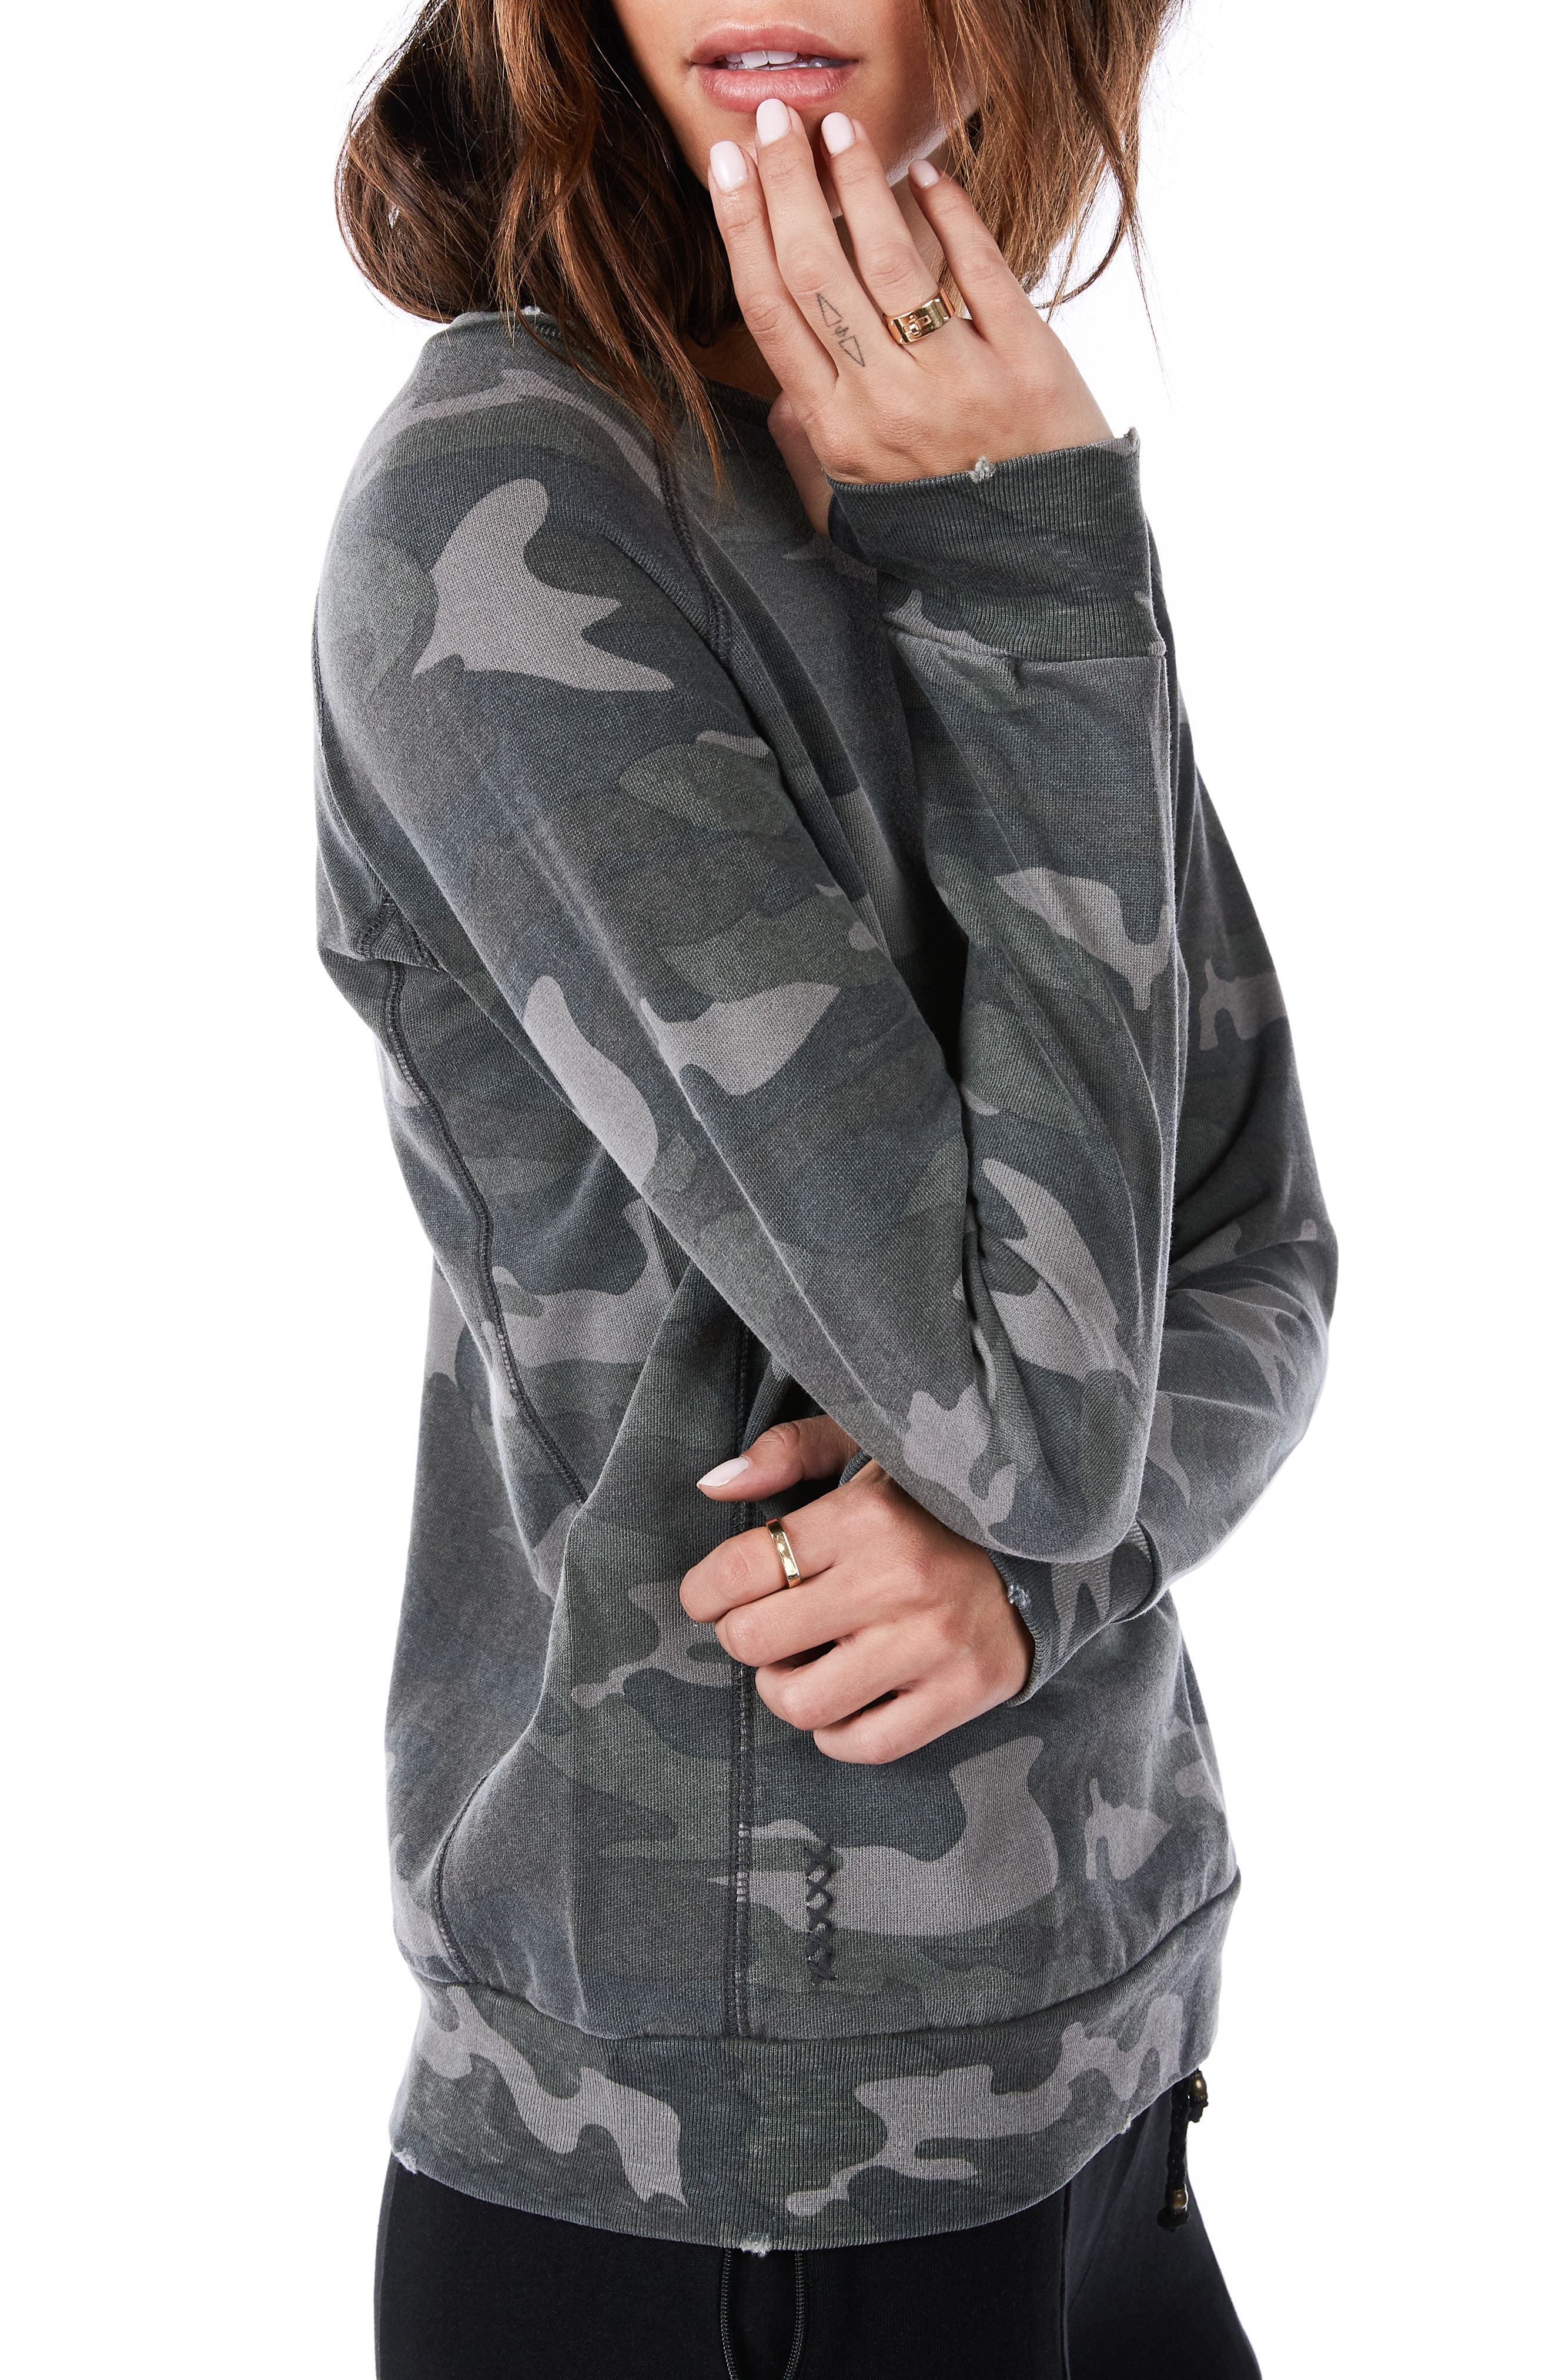 Distressed Camo Sweatshirt,                             Alternate thumbnail 3, color,                             300